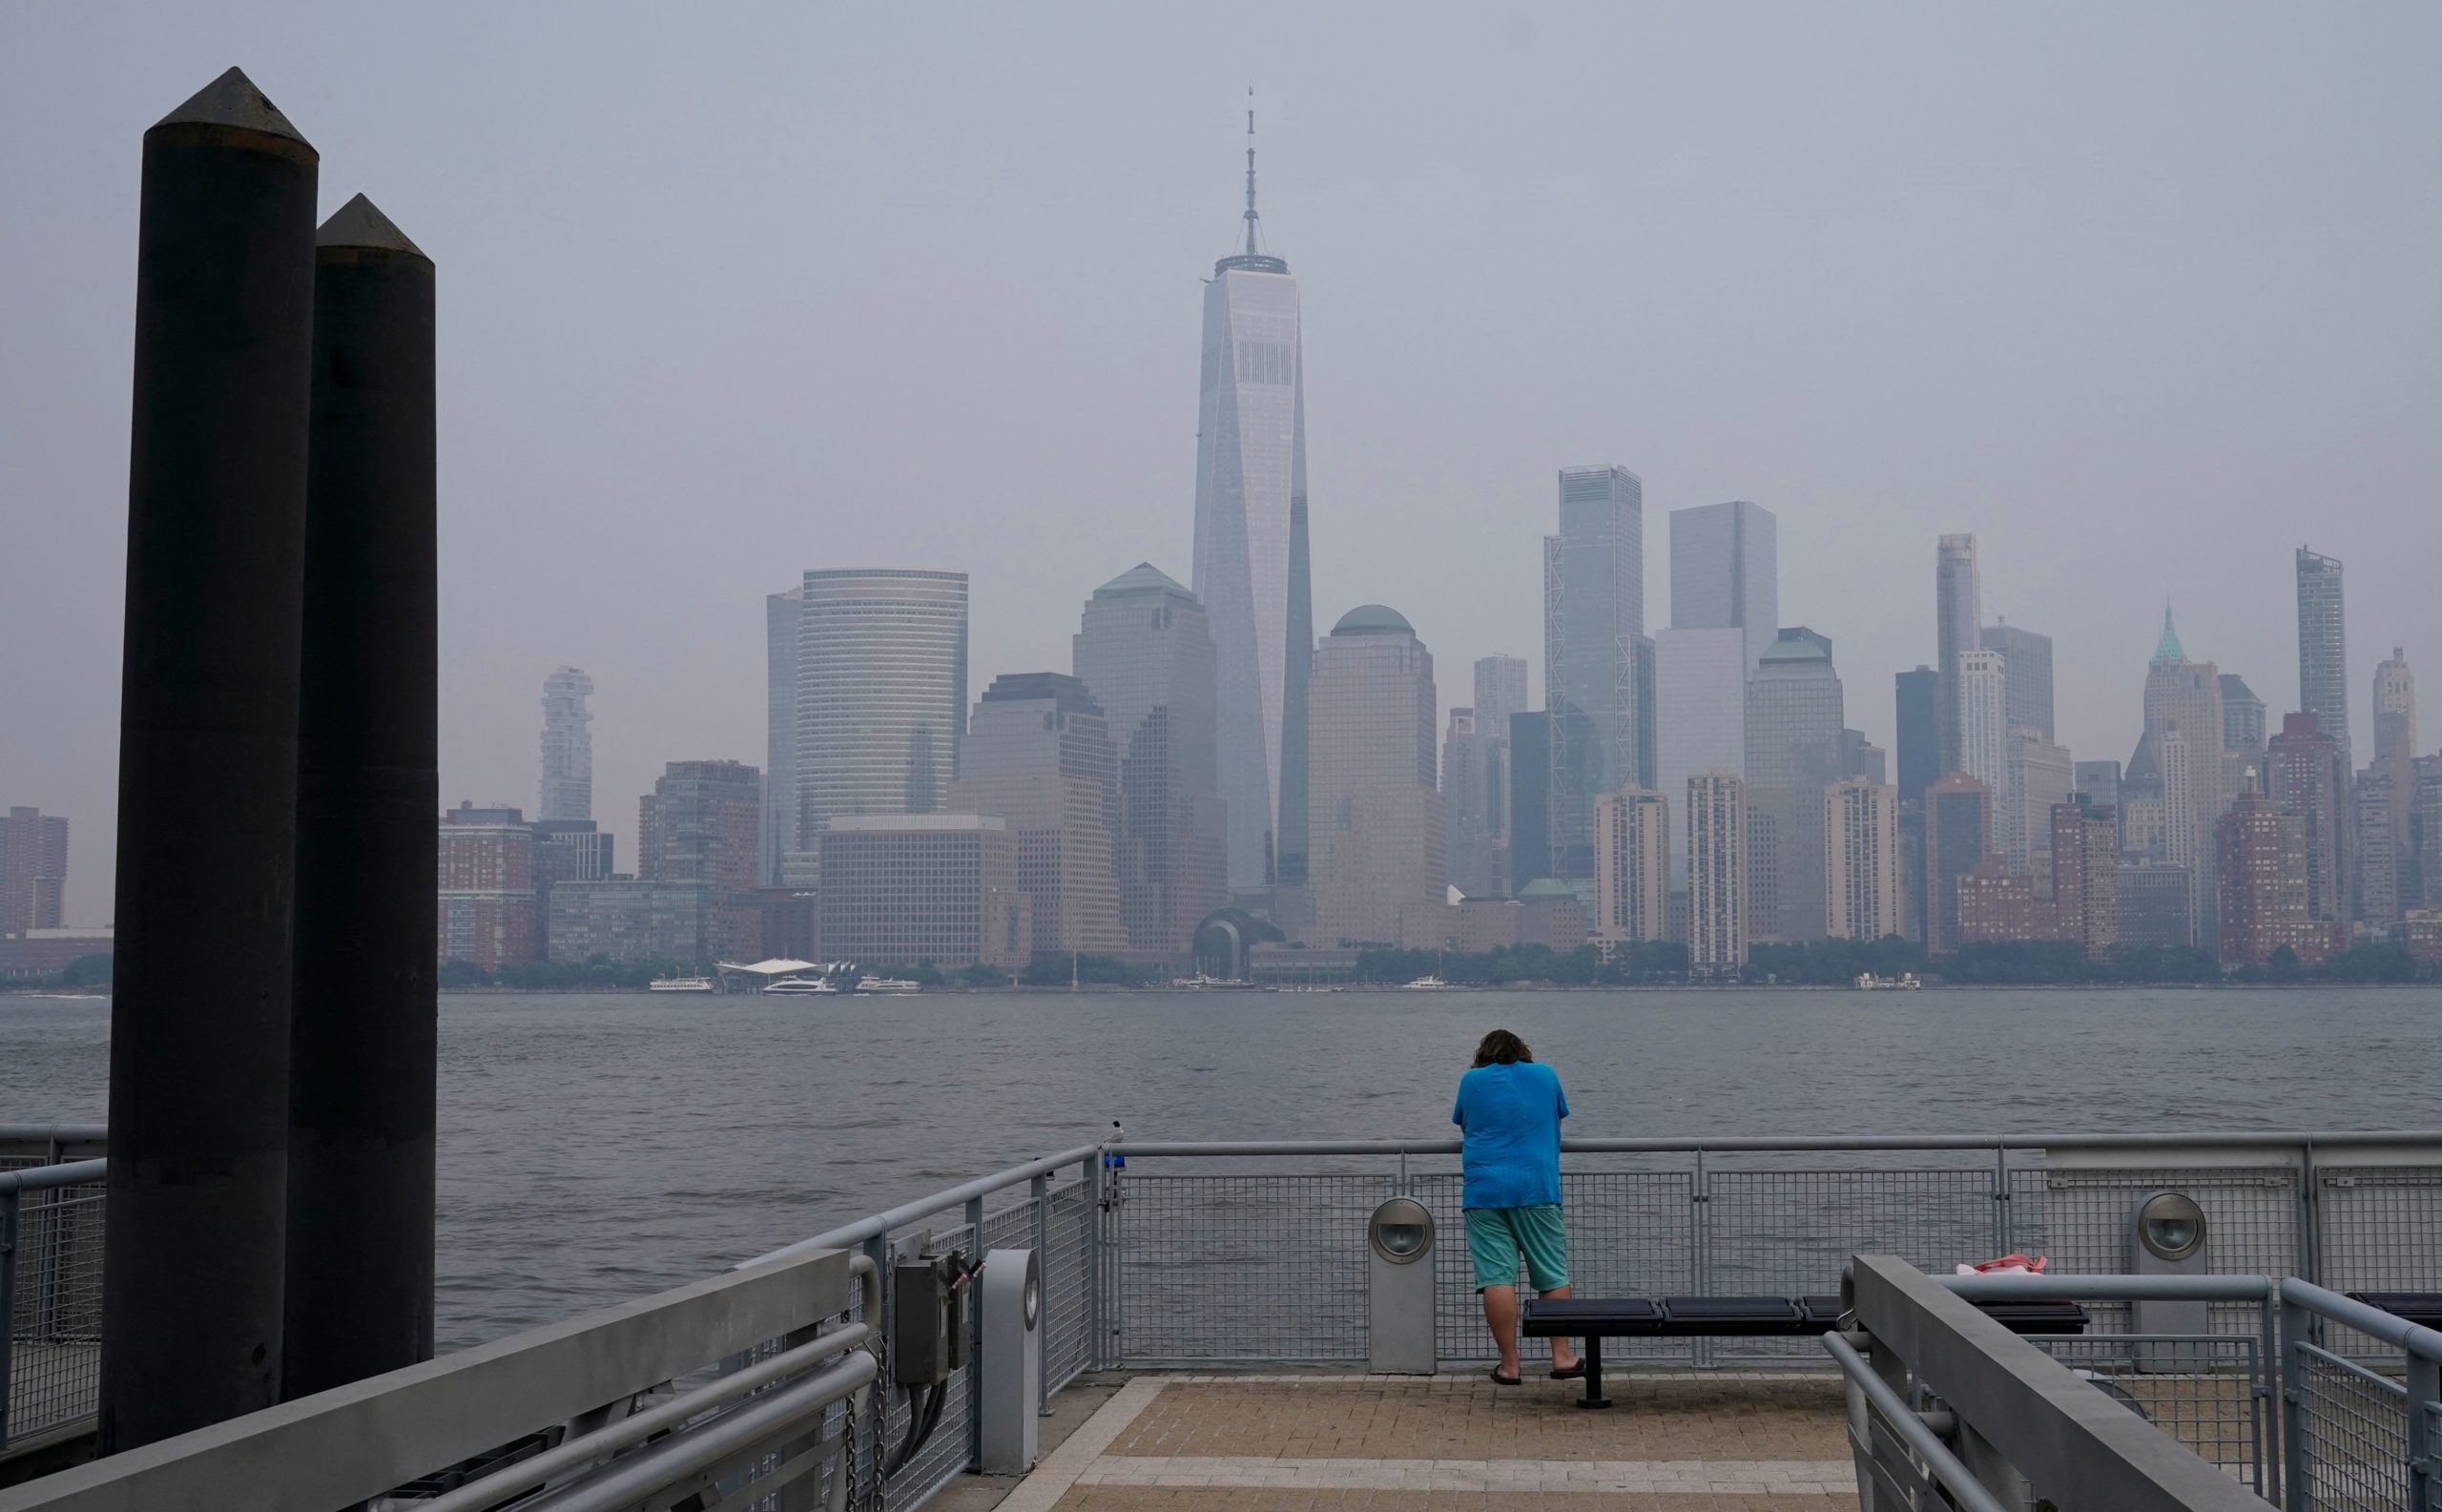 A man waits on the pier in Exchange Place in Jersey City, New Jersey on July 20, 2021 as New York officials issue a air quality health advisory due to the west coast wildfires. (Photo by TIMOTHY A. CLARY/AFP via Getty Images)